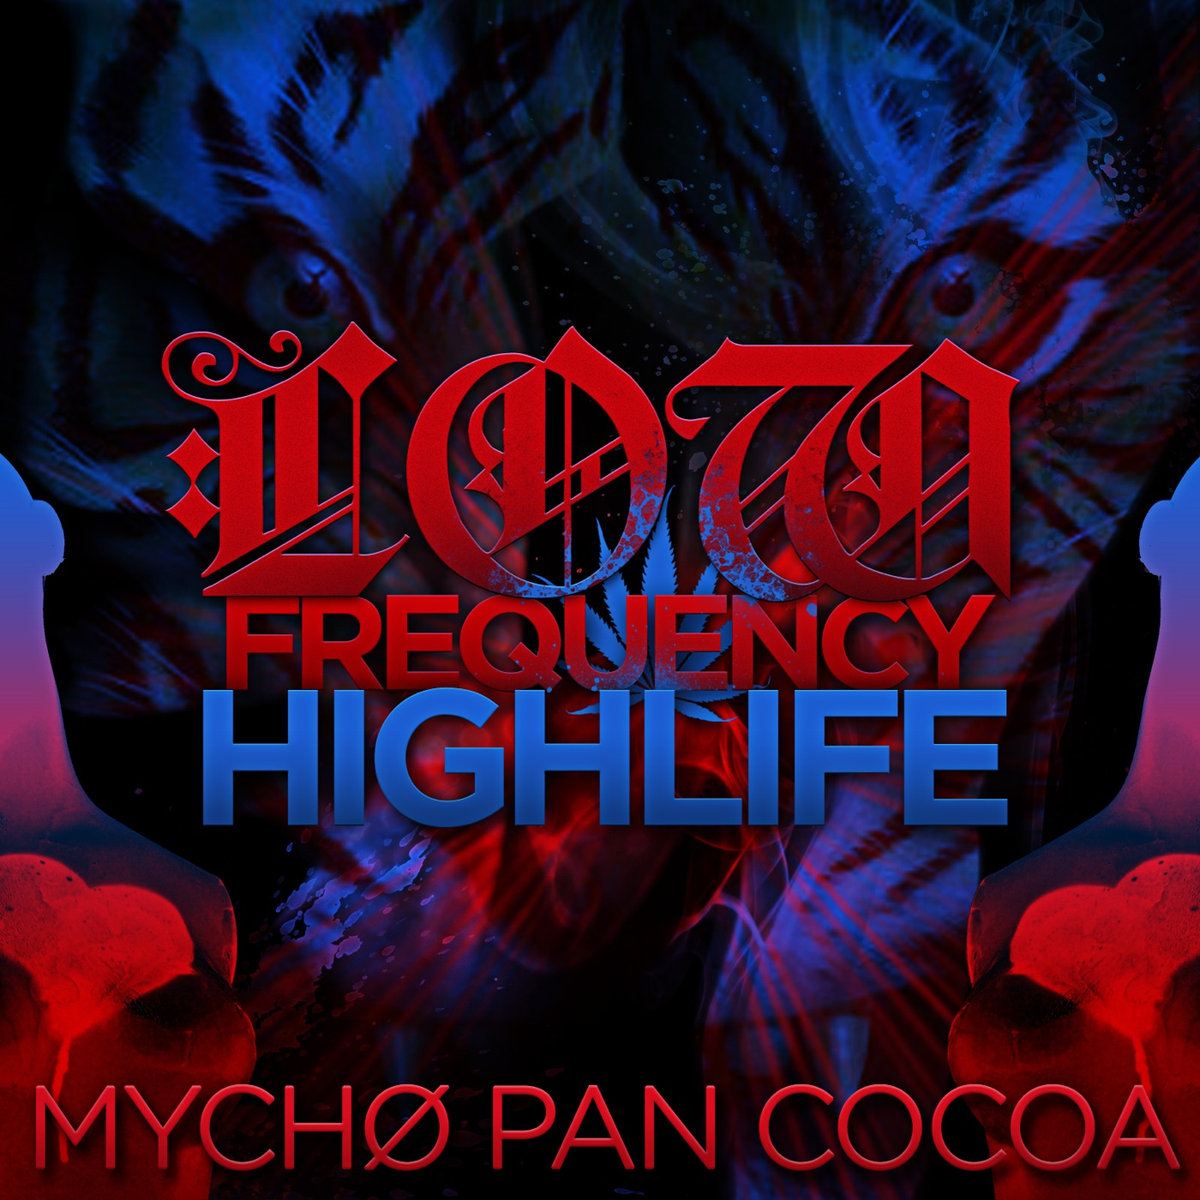 Mycho Pan Cocoa - The Tiger & The Fairy @ 'Low Frequency High Life' album (electronic, dubstep)